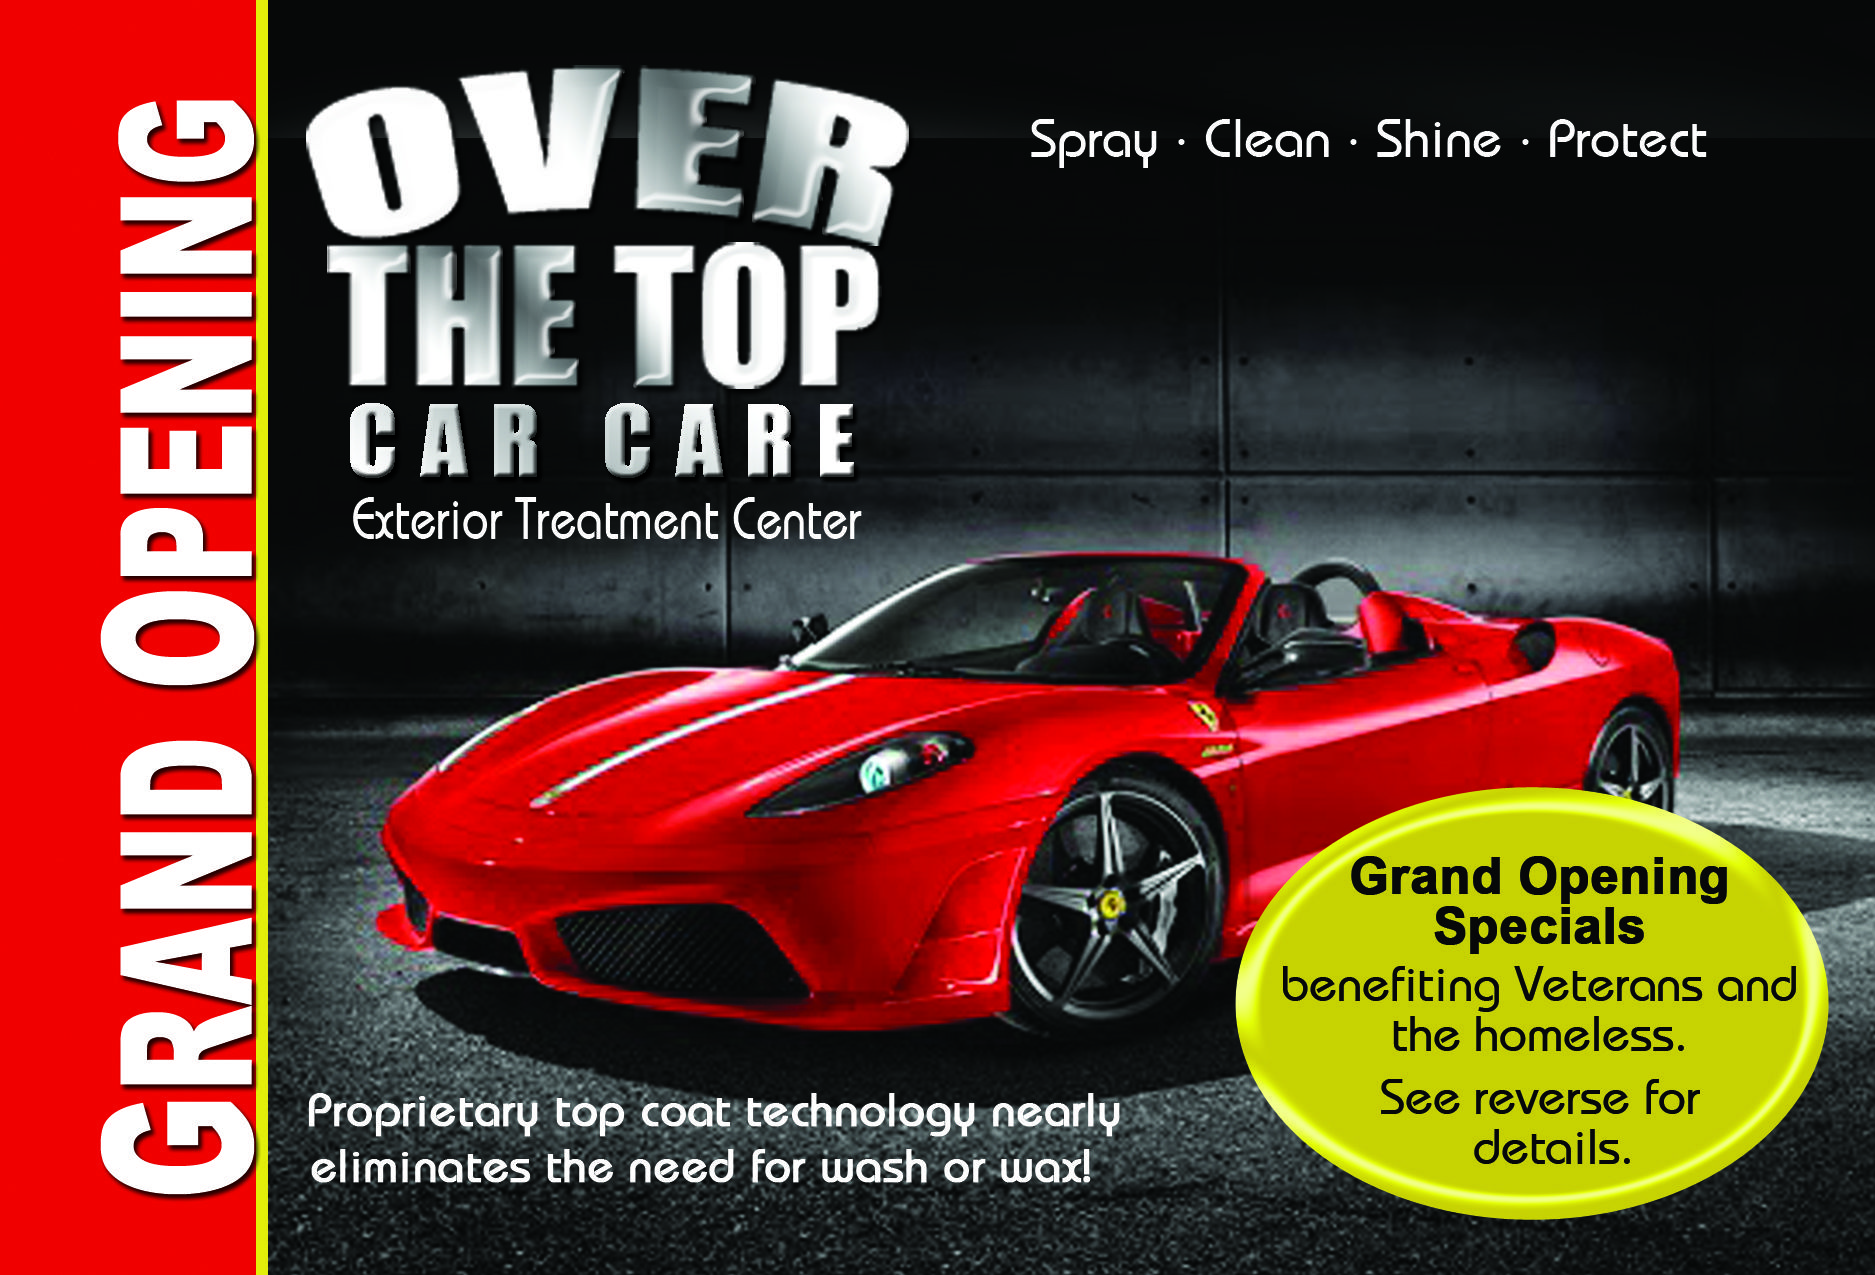 (koji's) Over the Top Car Care - Post Cards  Invites, website, cause marketing and social media